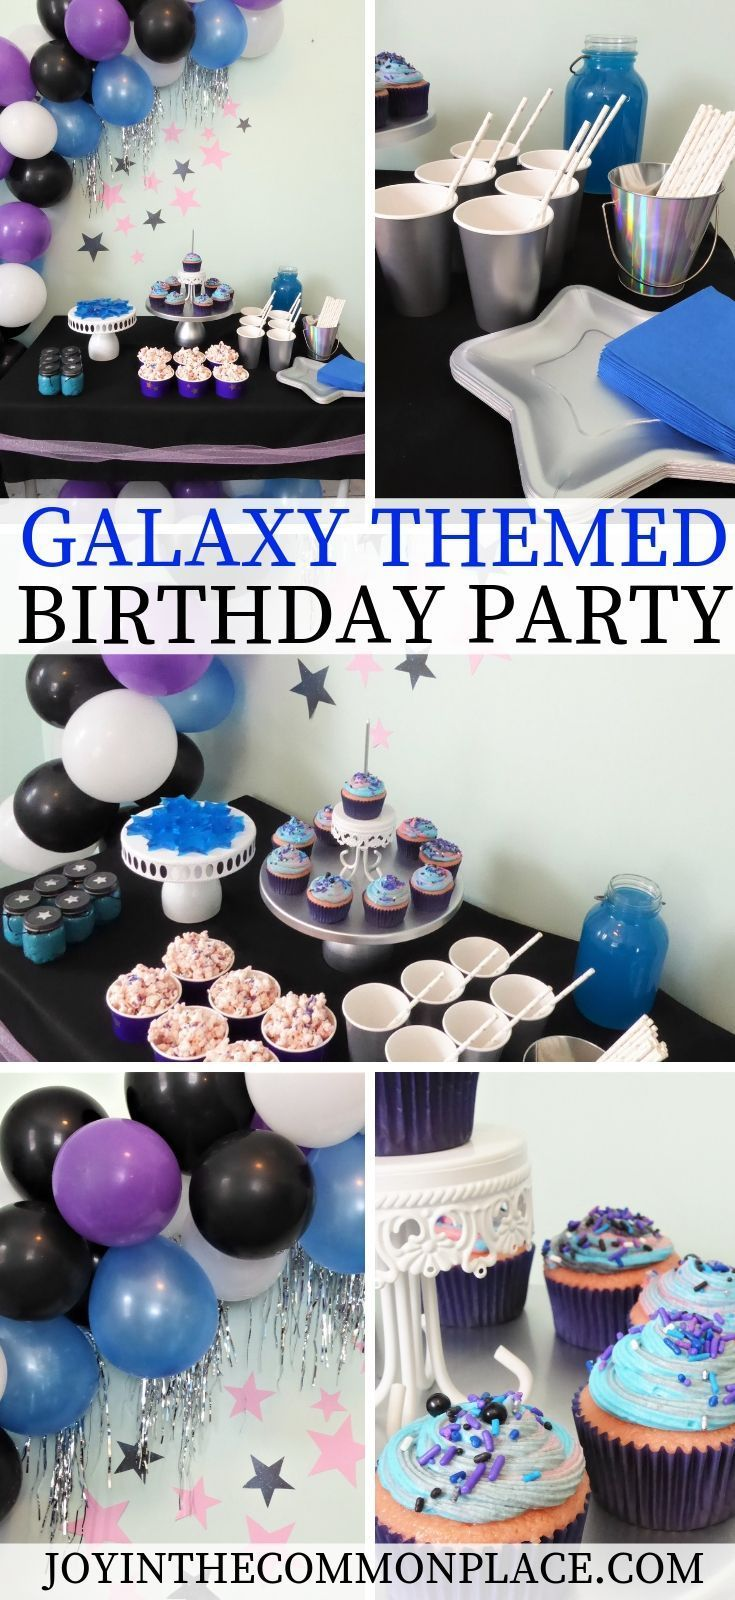 Host a Galaxy themed birthday party for kids Discover galaxy and star themed party decorations party favors and simple party food ideas 92253492353678368